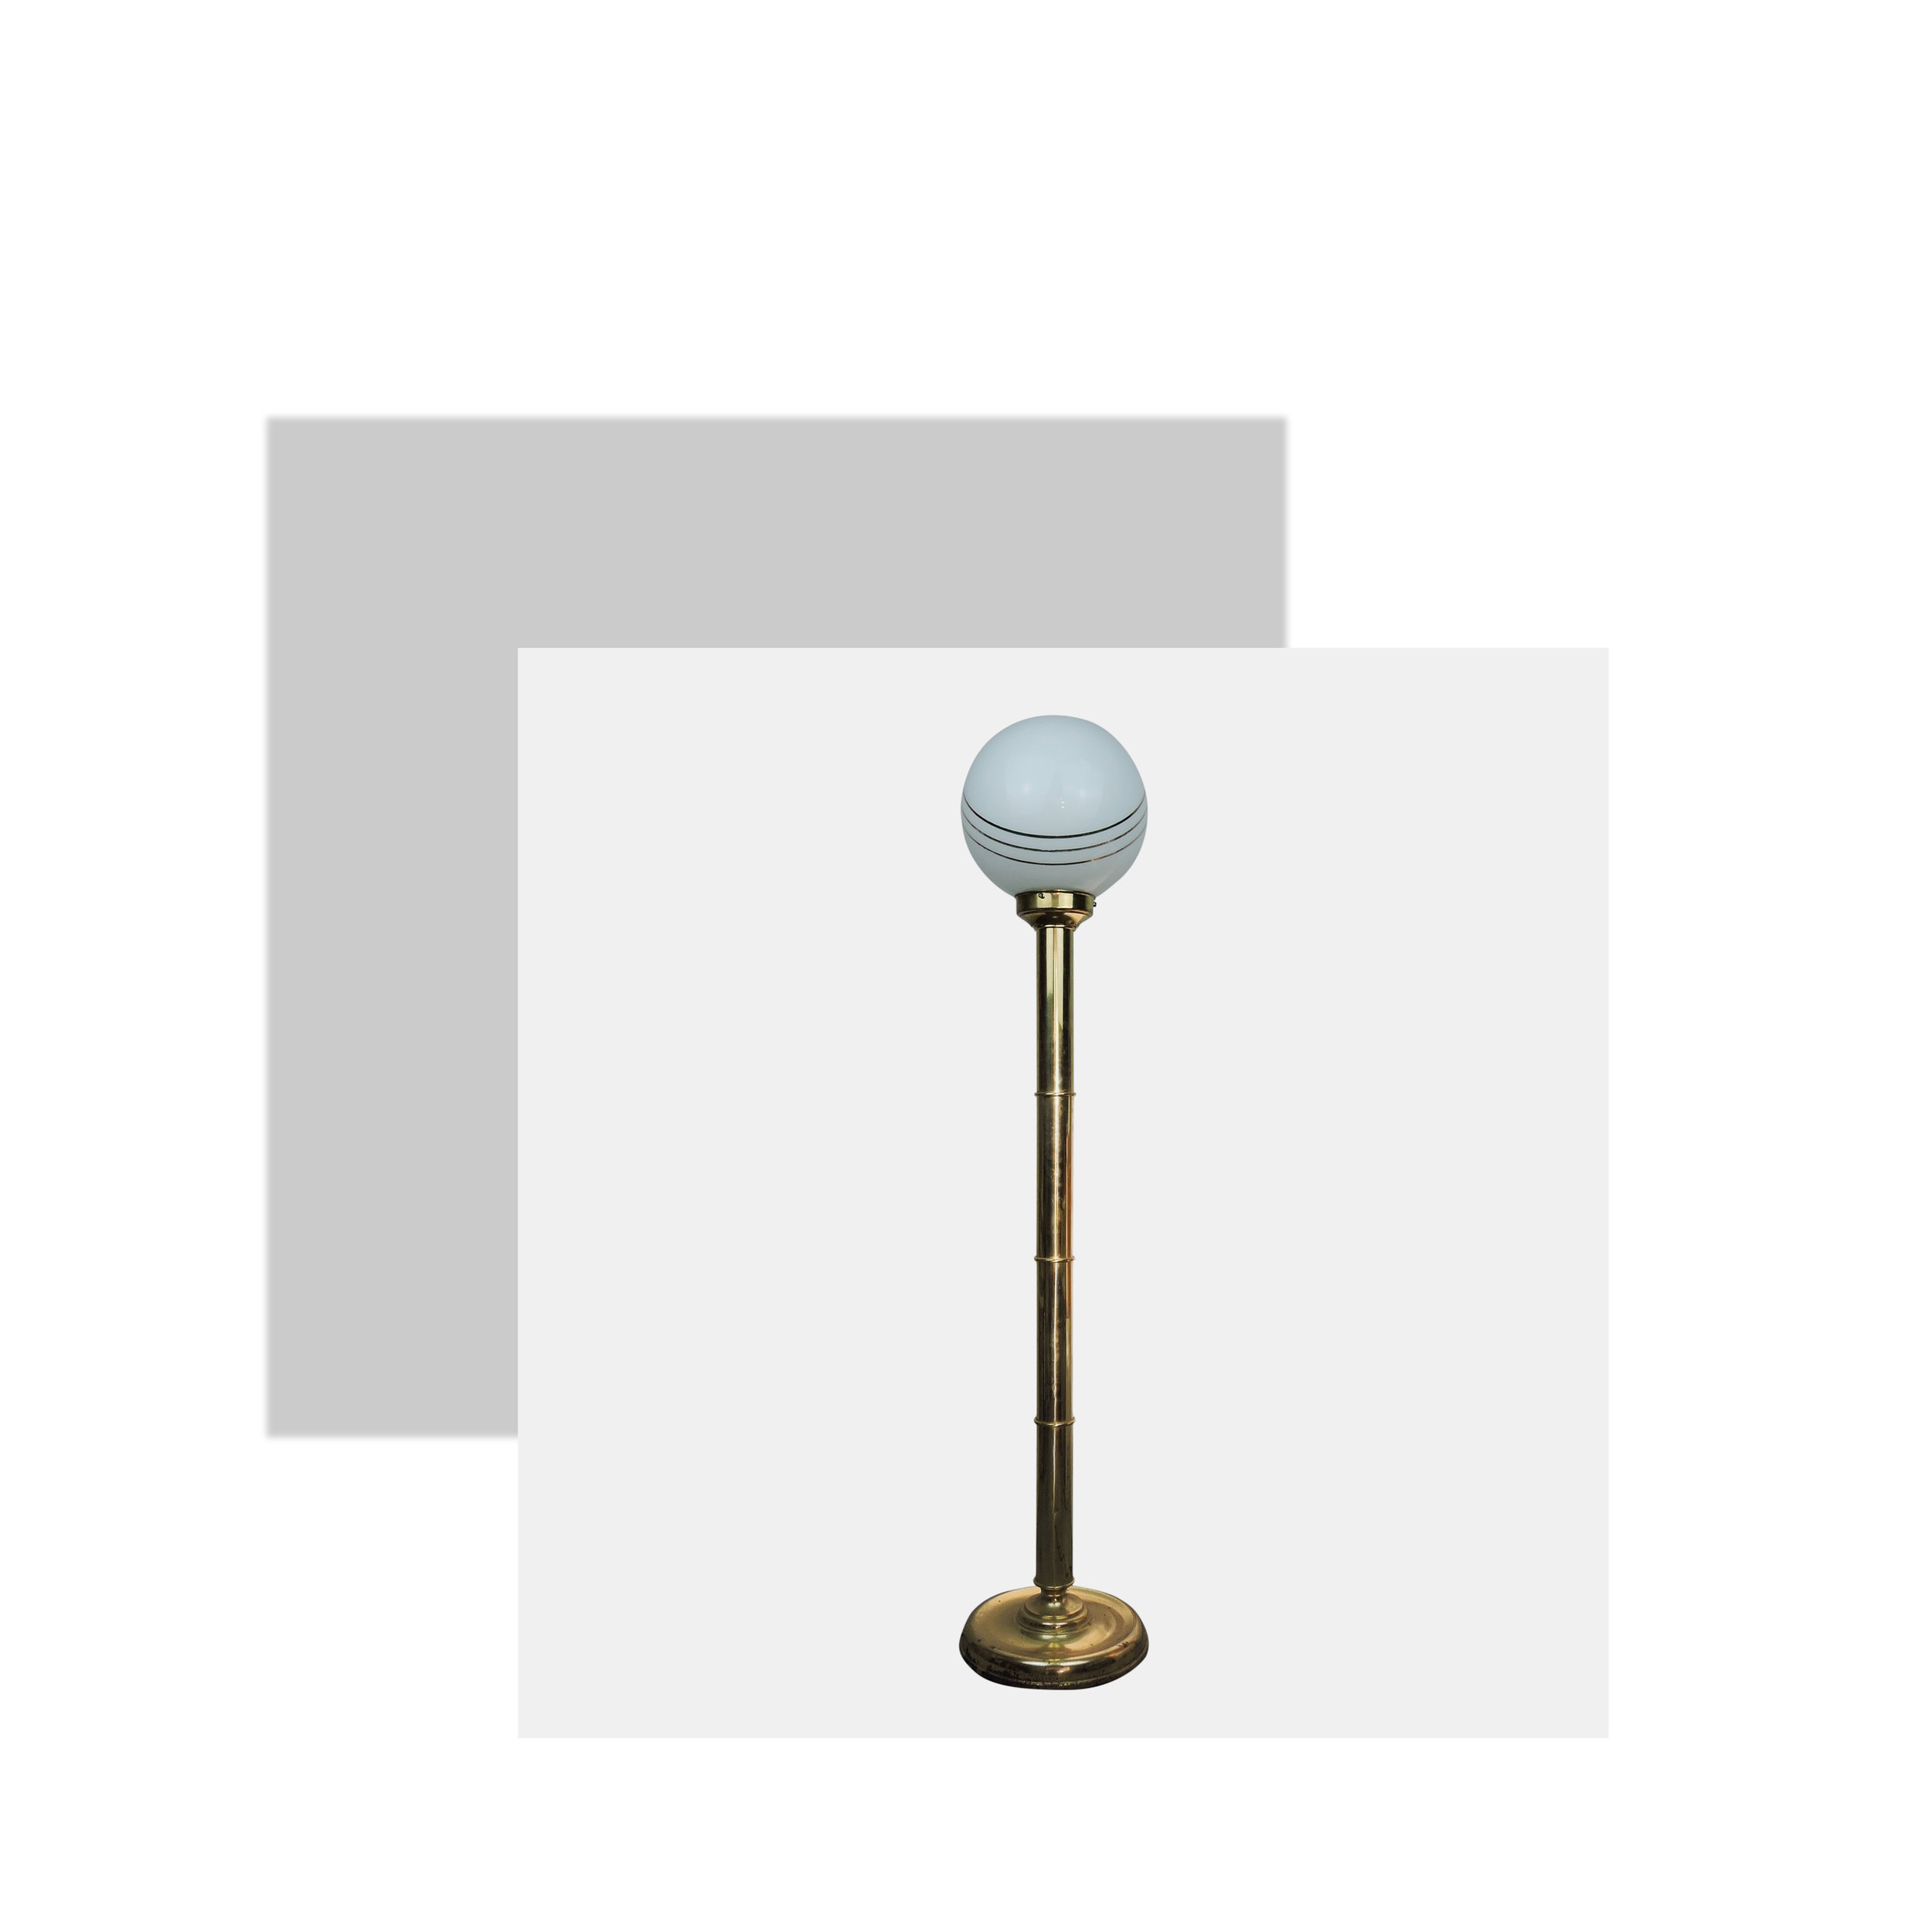 I mean wow, how impressive is this floor lamp? The tall thick brass stem and the white globe with matching gold stripes is just beautiful. I would put this in the living room or even a bedroom. If you had another brass coloured item such as a vase or mirror, you could give your room a refresh with no effort at all.